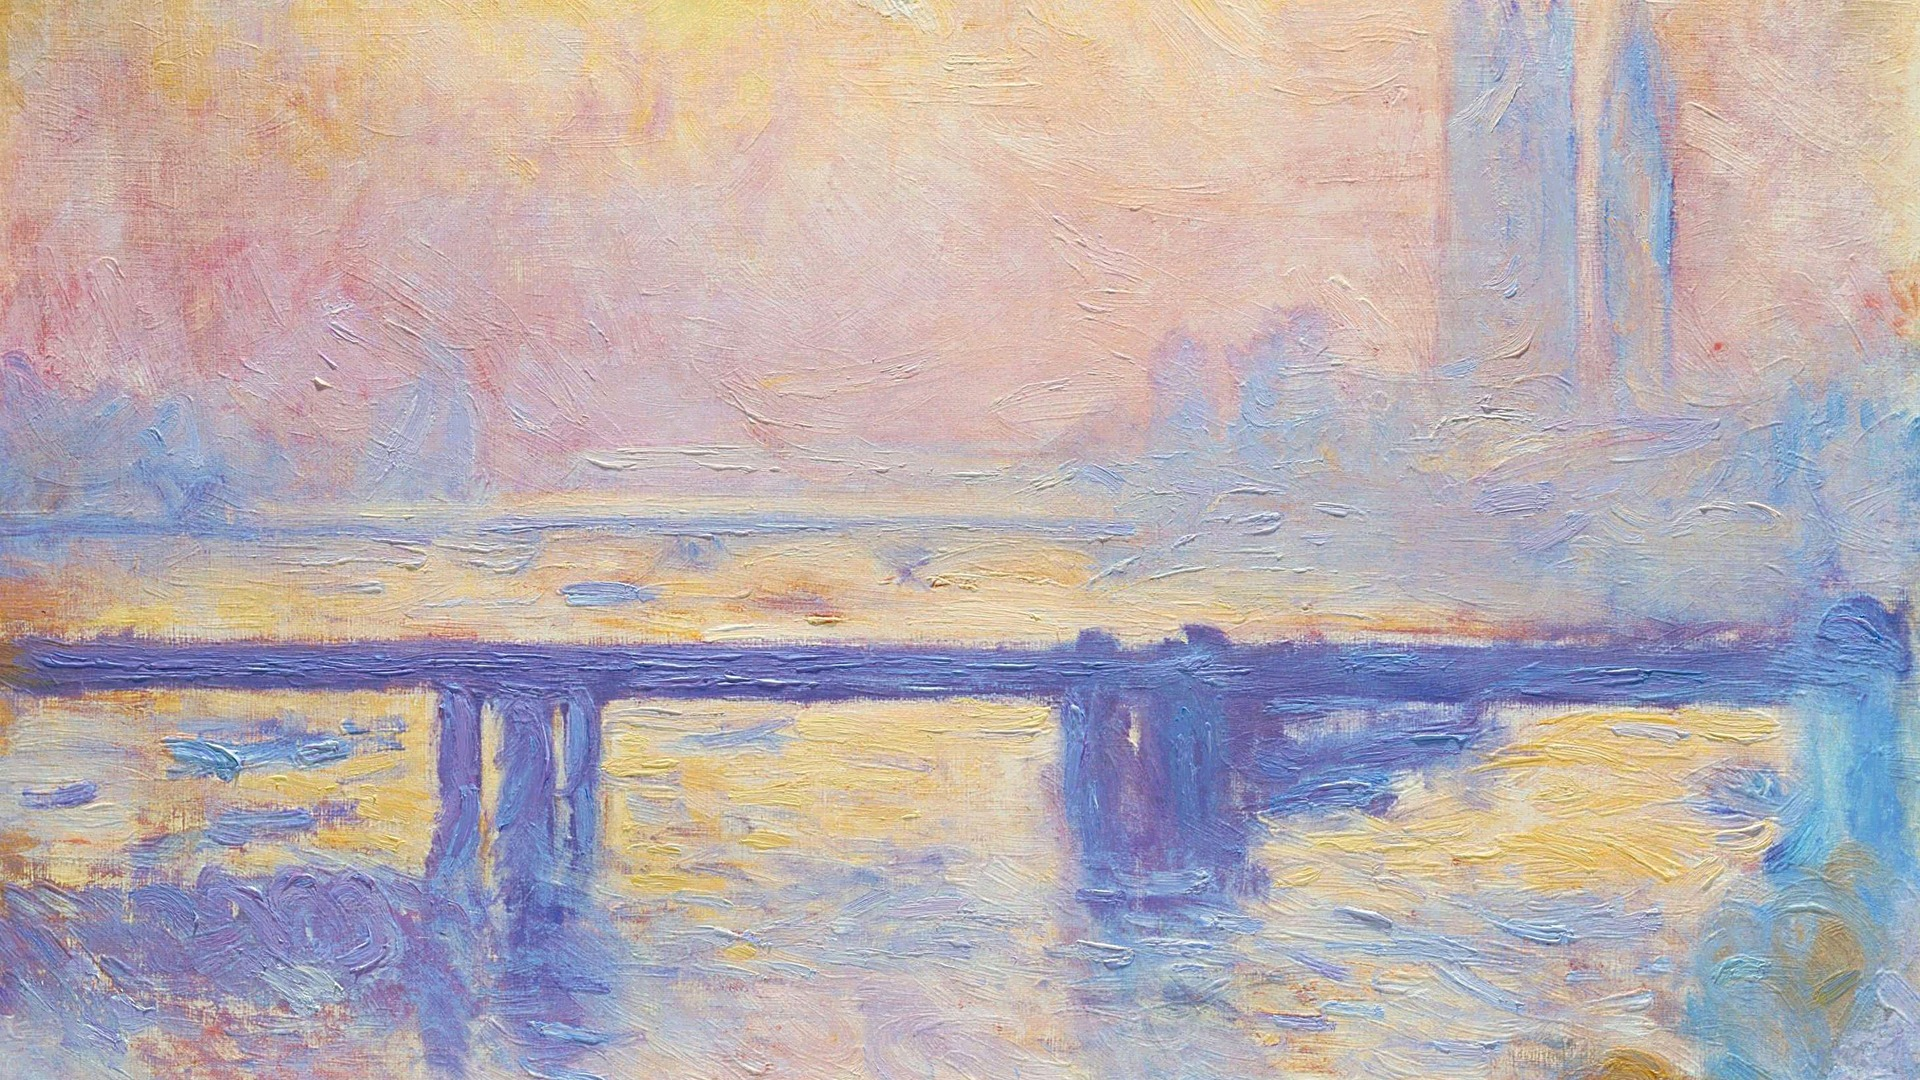 Download-Claude-Monet-picture-Bridge-To-Charing-Cross-the-urban-landscape-section-pain-wallpaper-wp3404959